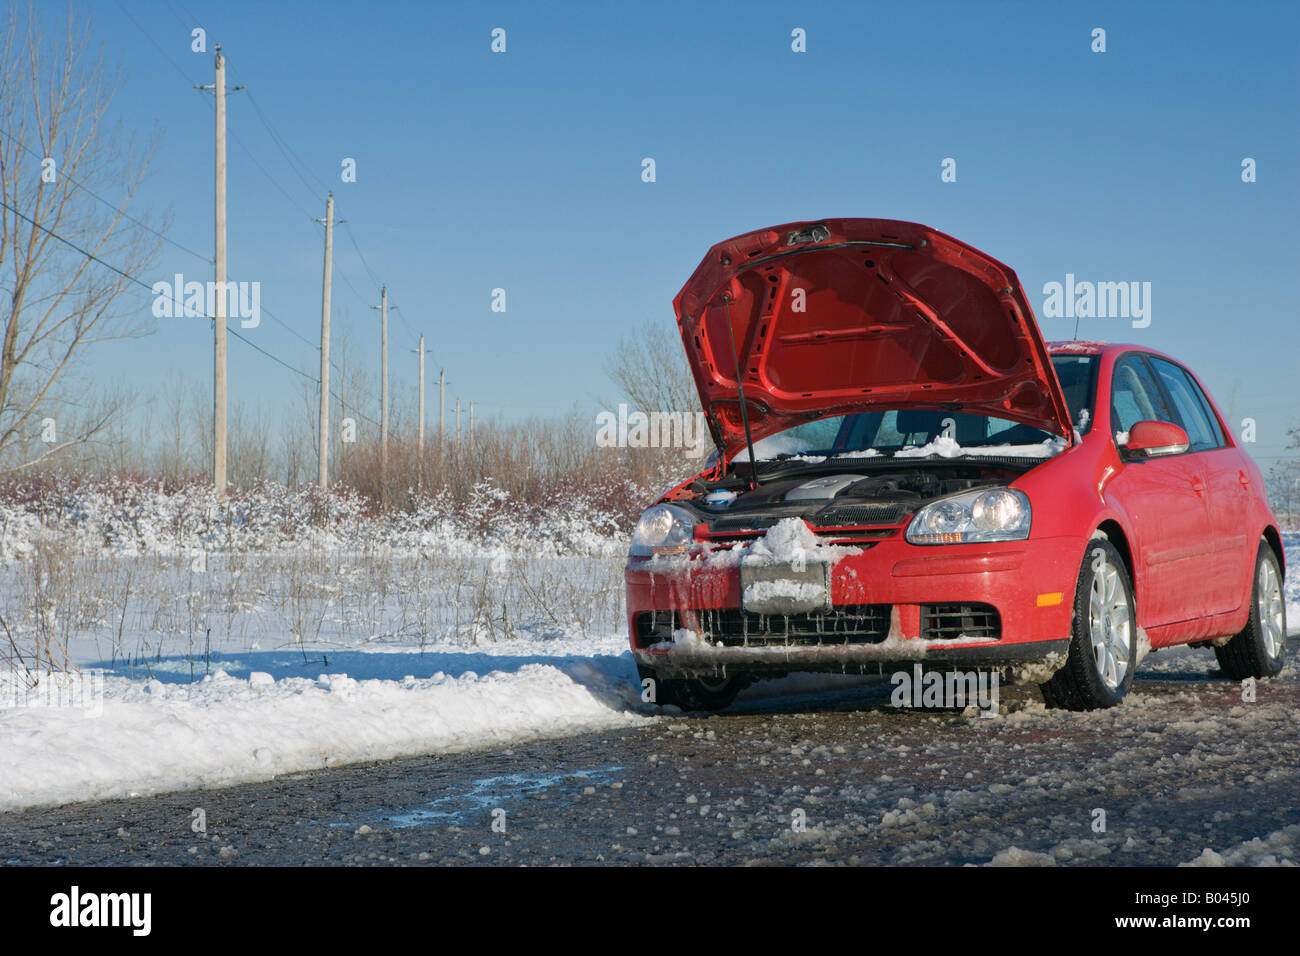 Car with Hood Up in Winter on Country Road Stock Photo